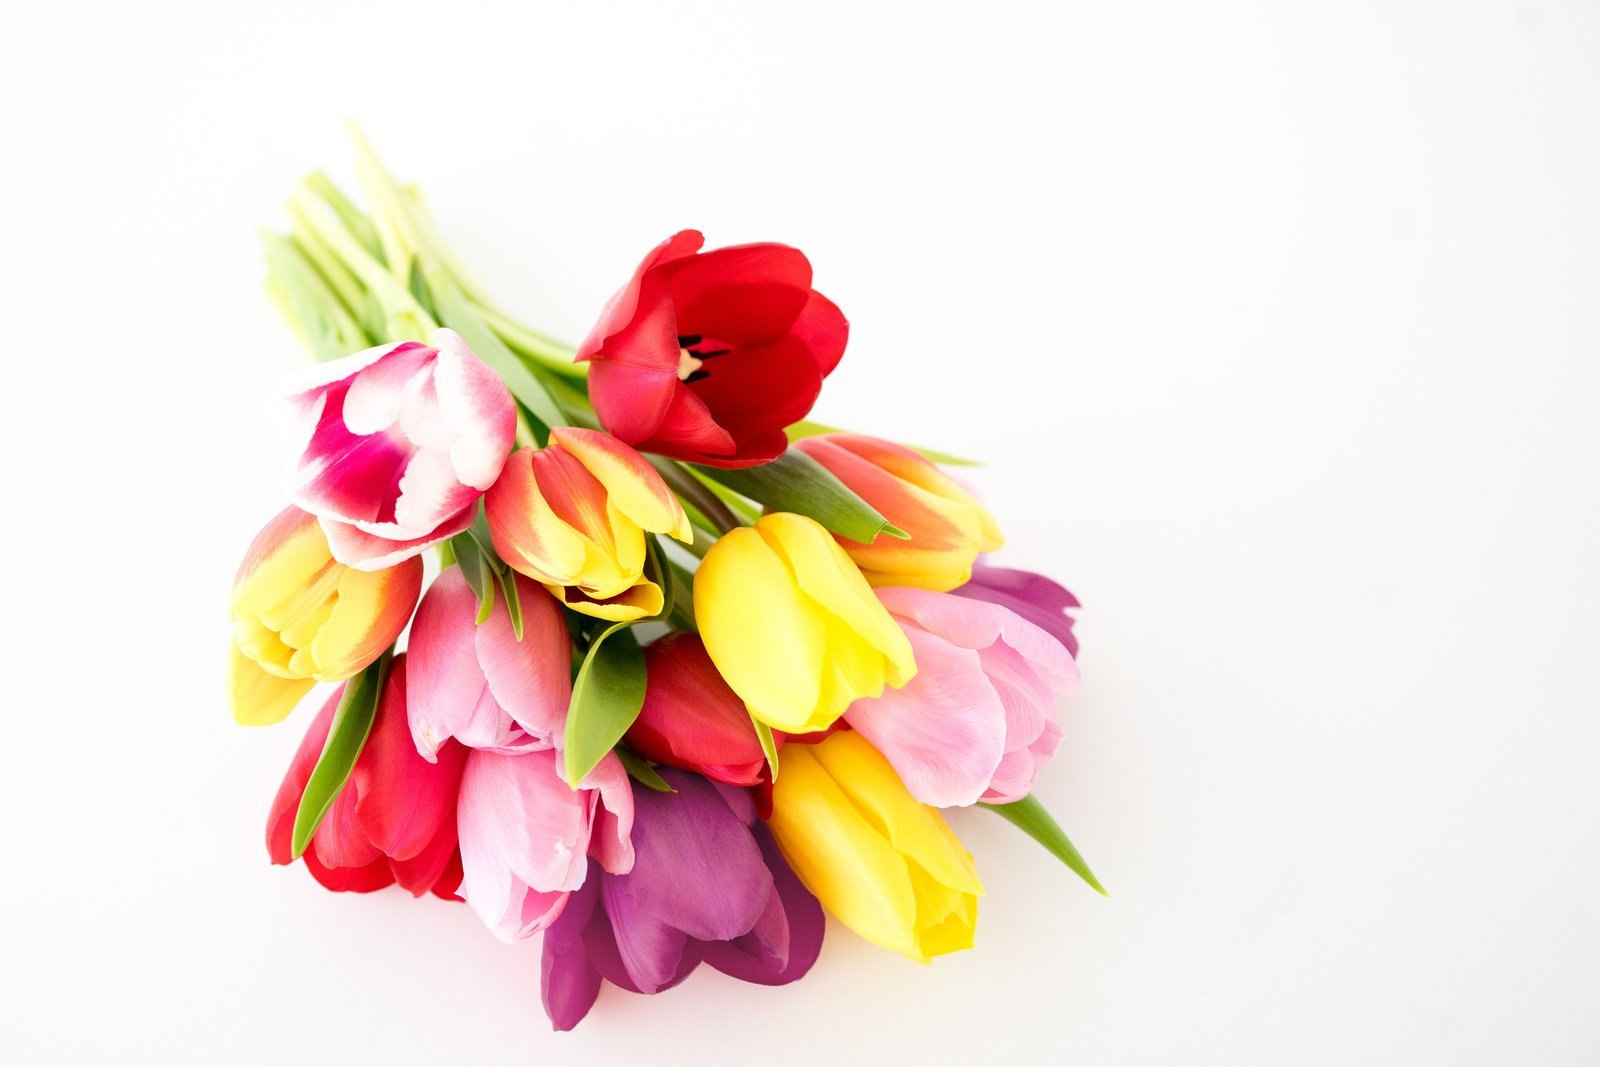 Flowers - Rainbow Tulip Bouquet - 15 Stems (Free Vase Included) by From You Flowers